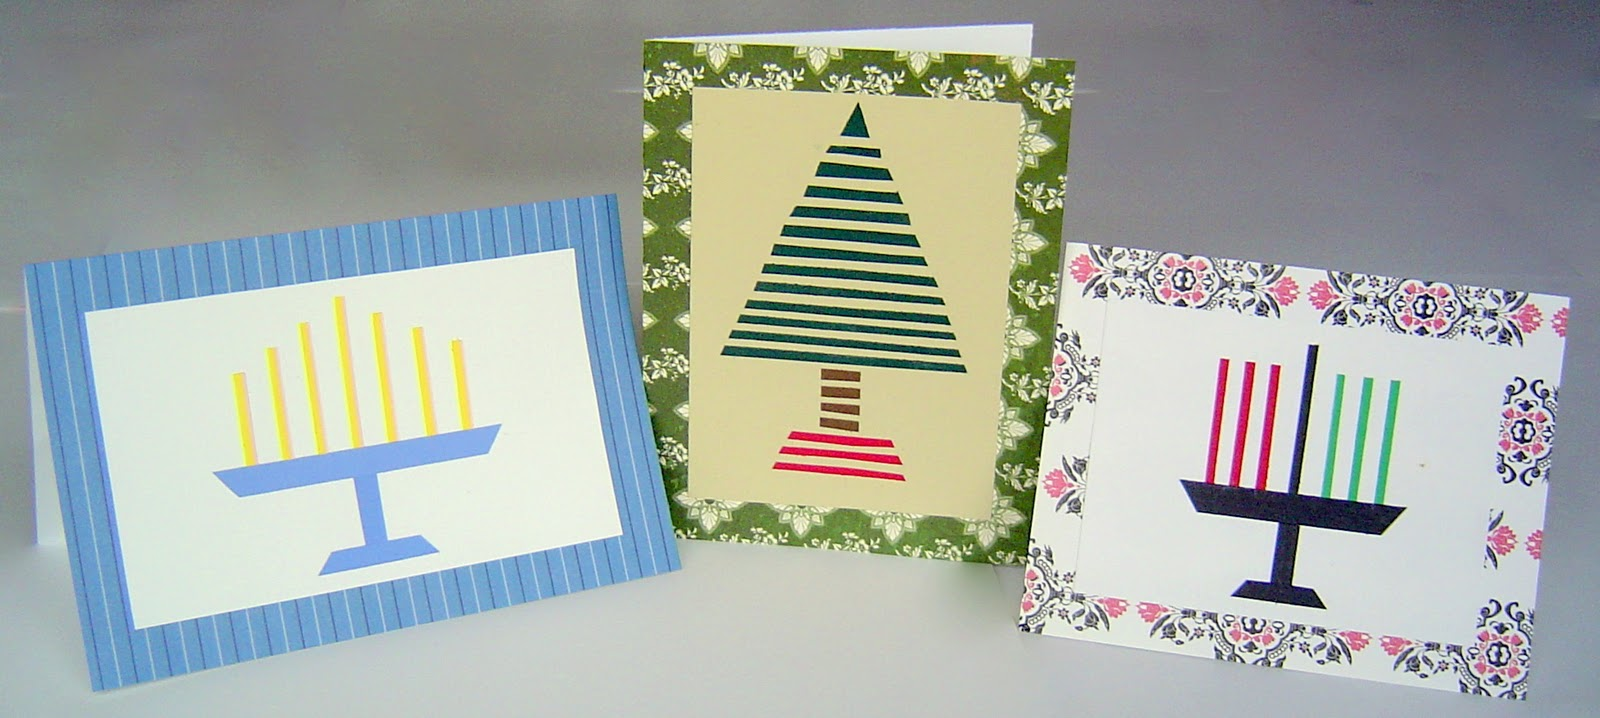 Christmas Cards Crafts With Cds